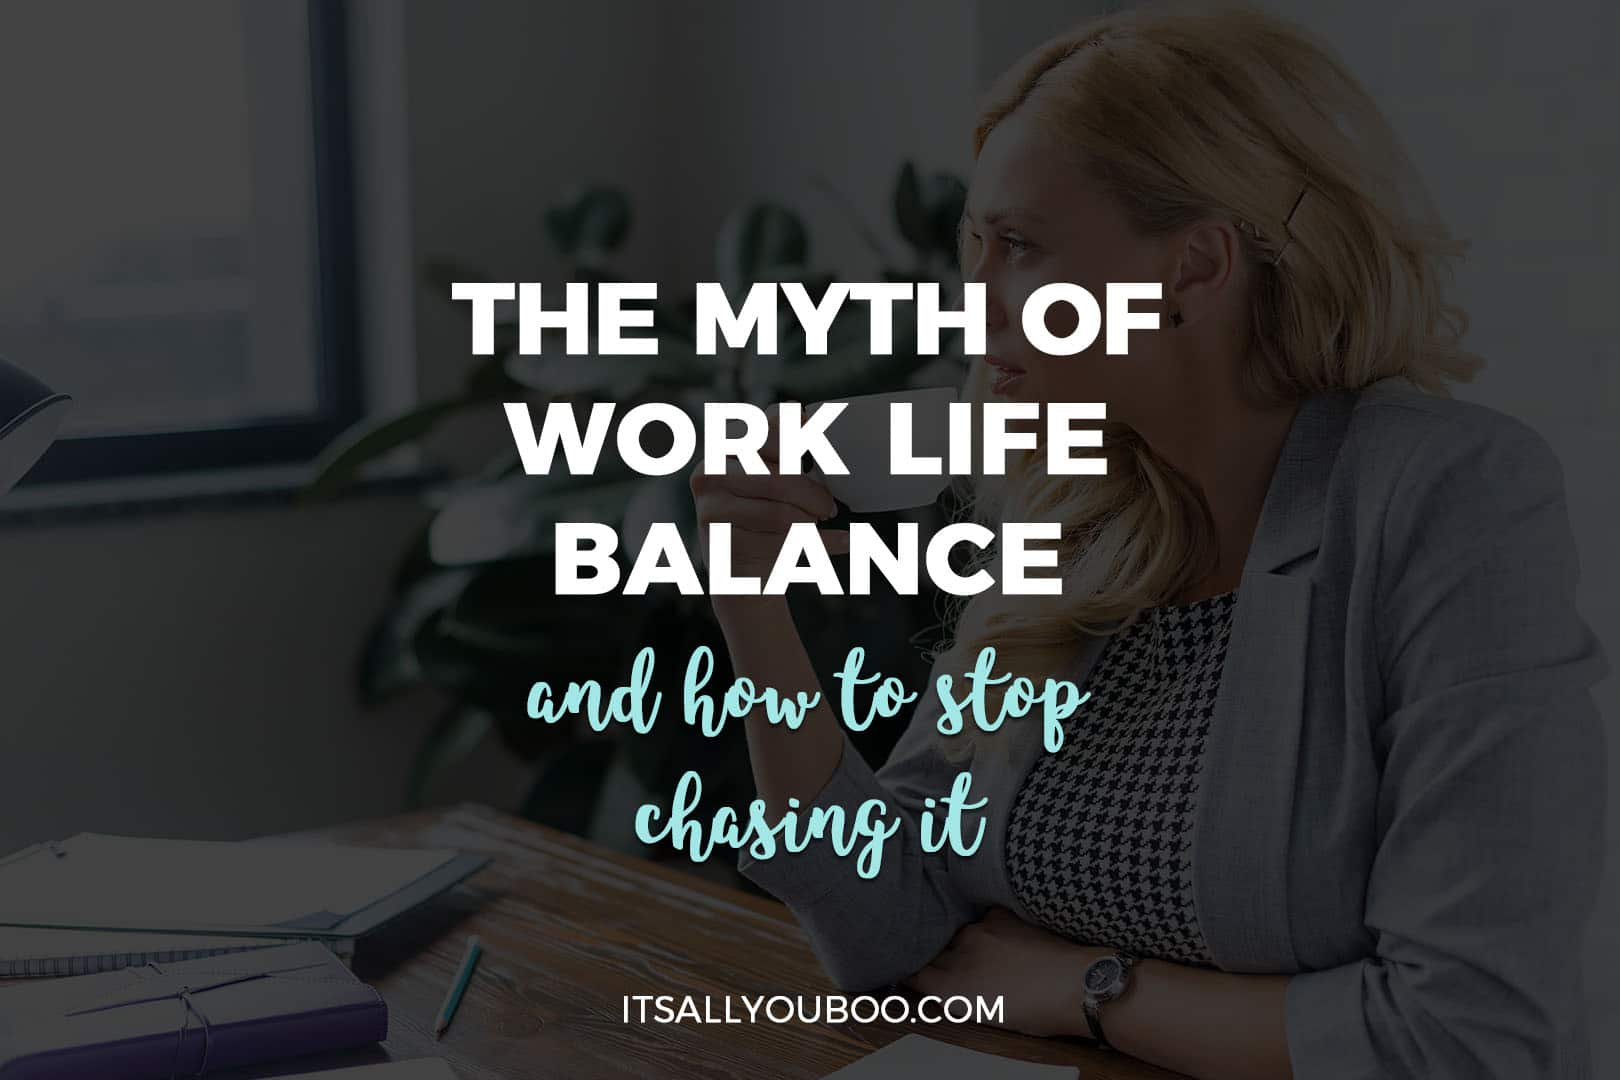 The Myth Of Work Life Balance And How To Stop Chasing It